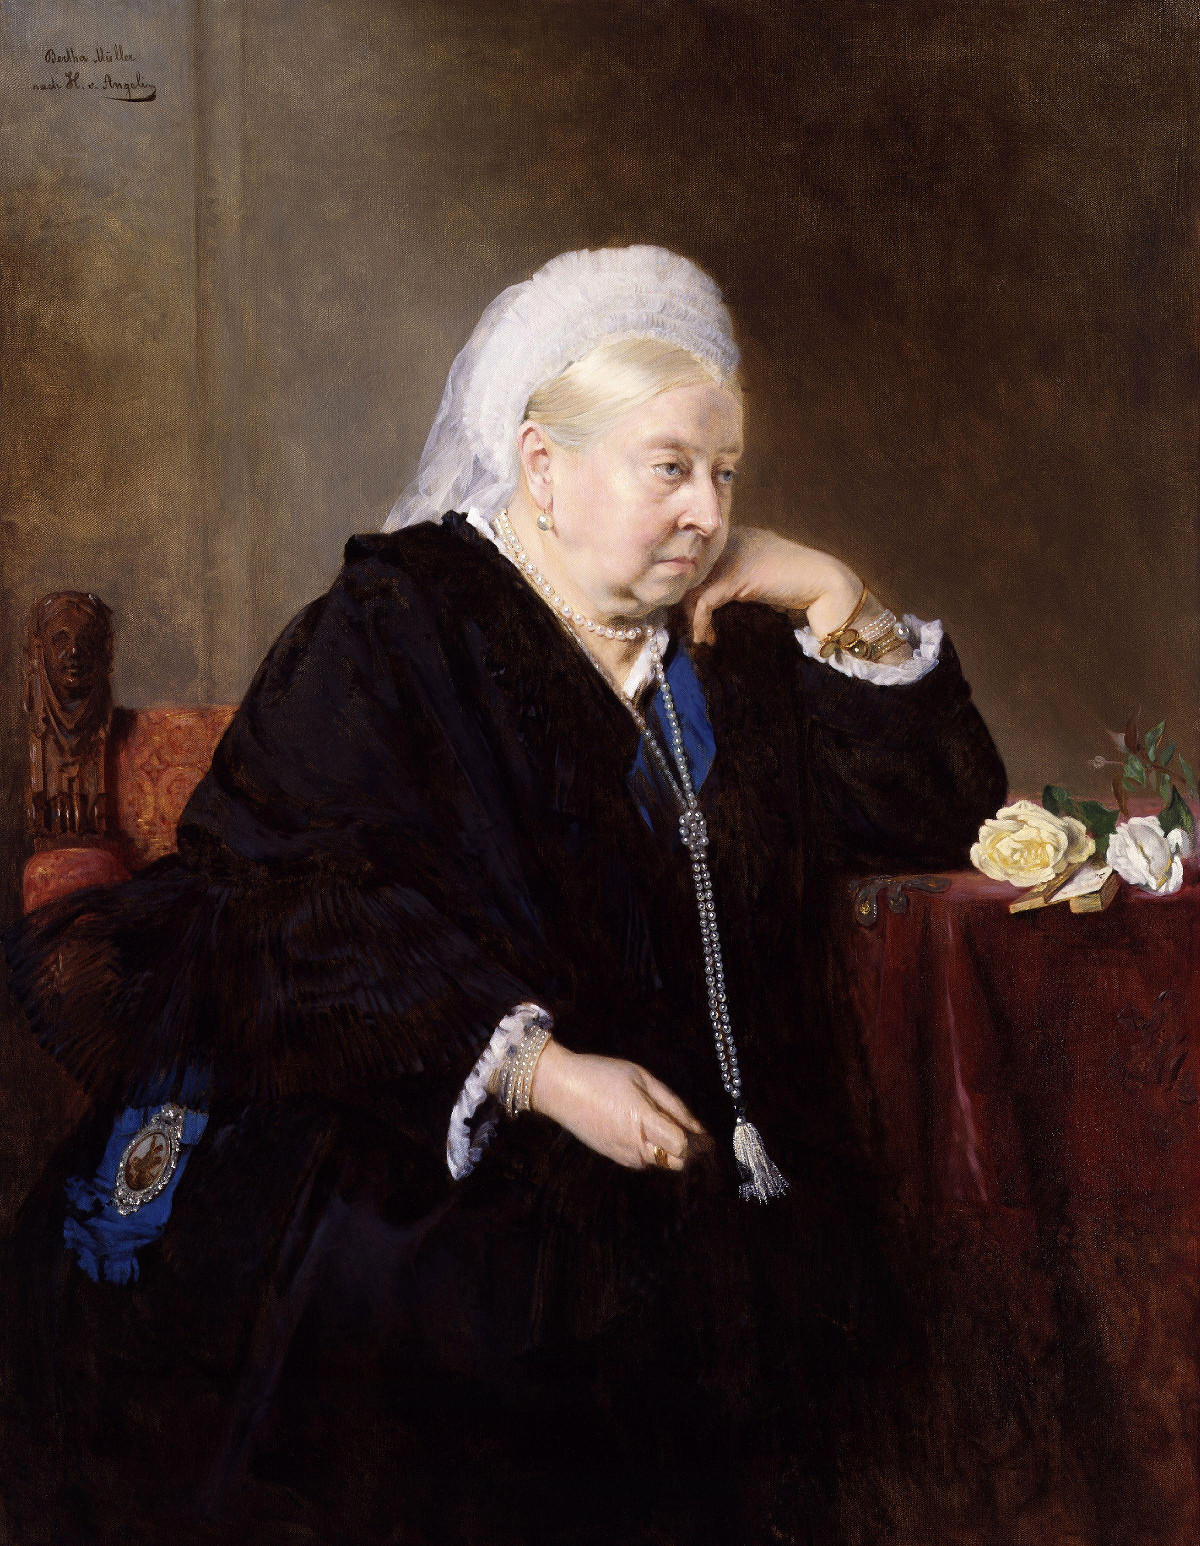 Queen Victoria, by Bertha Müller, 1899